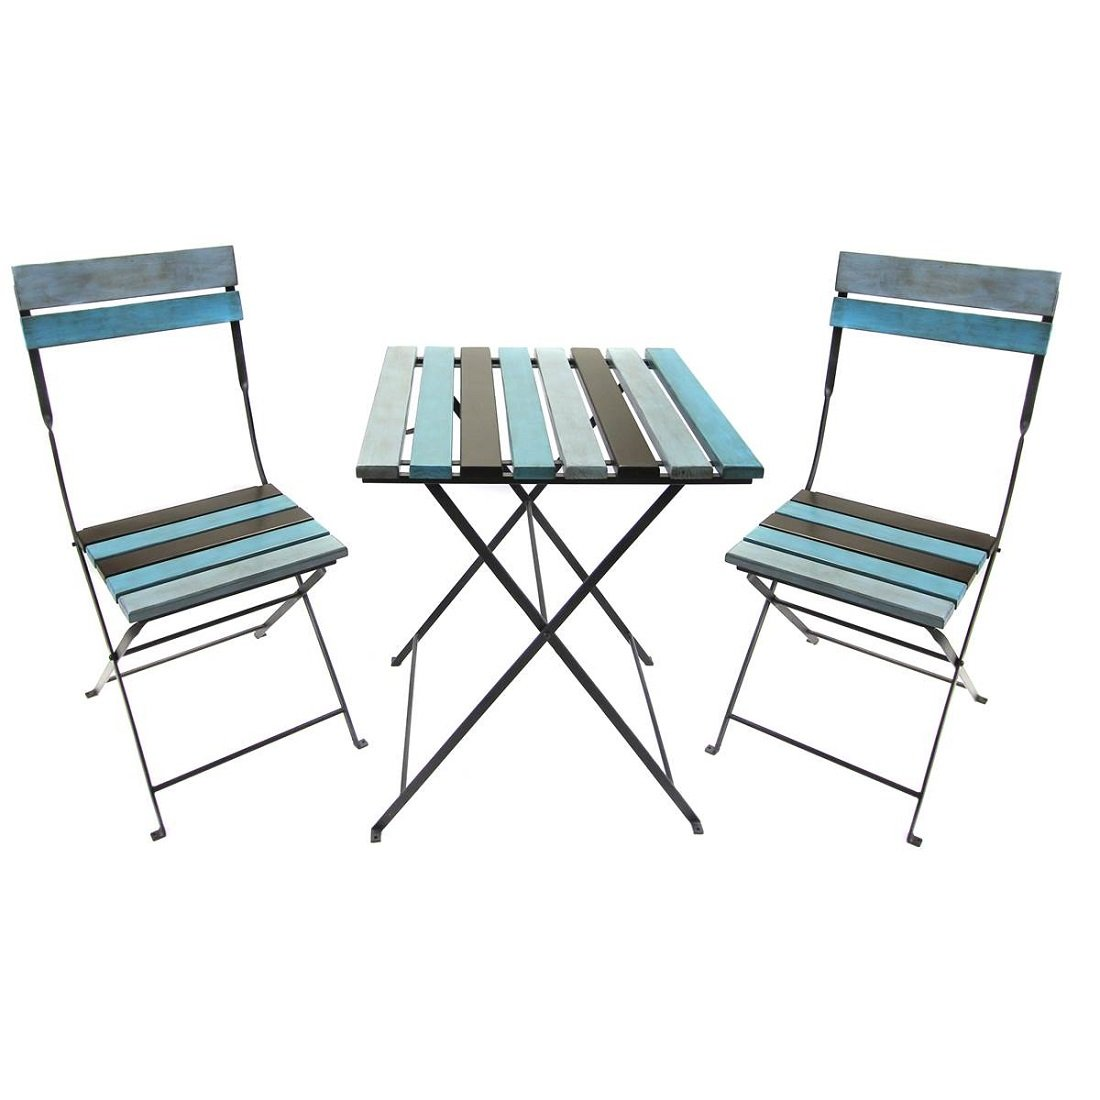 3-Piece Steel and Wood Outdoor Patio Furniture Set - Table: 23.6